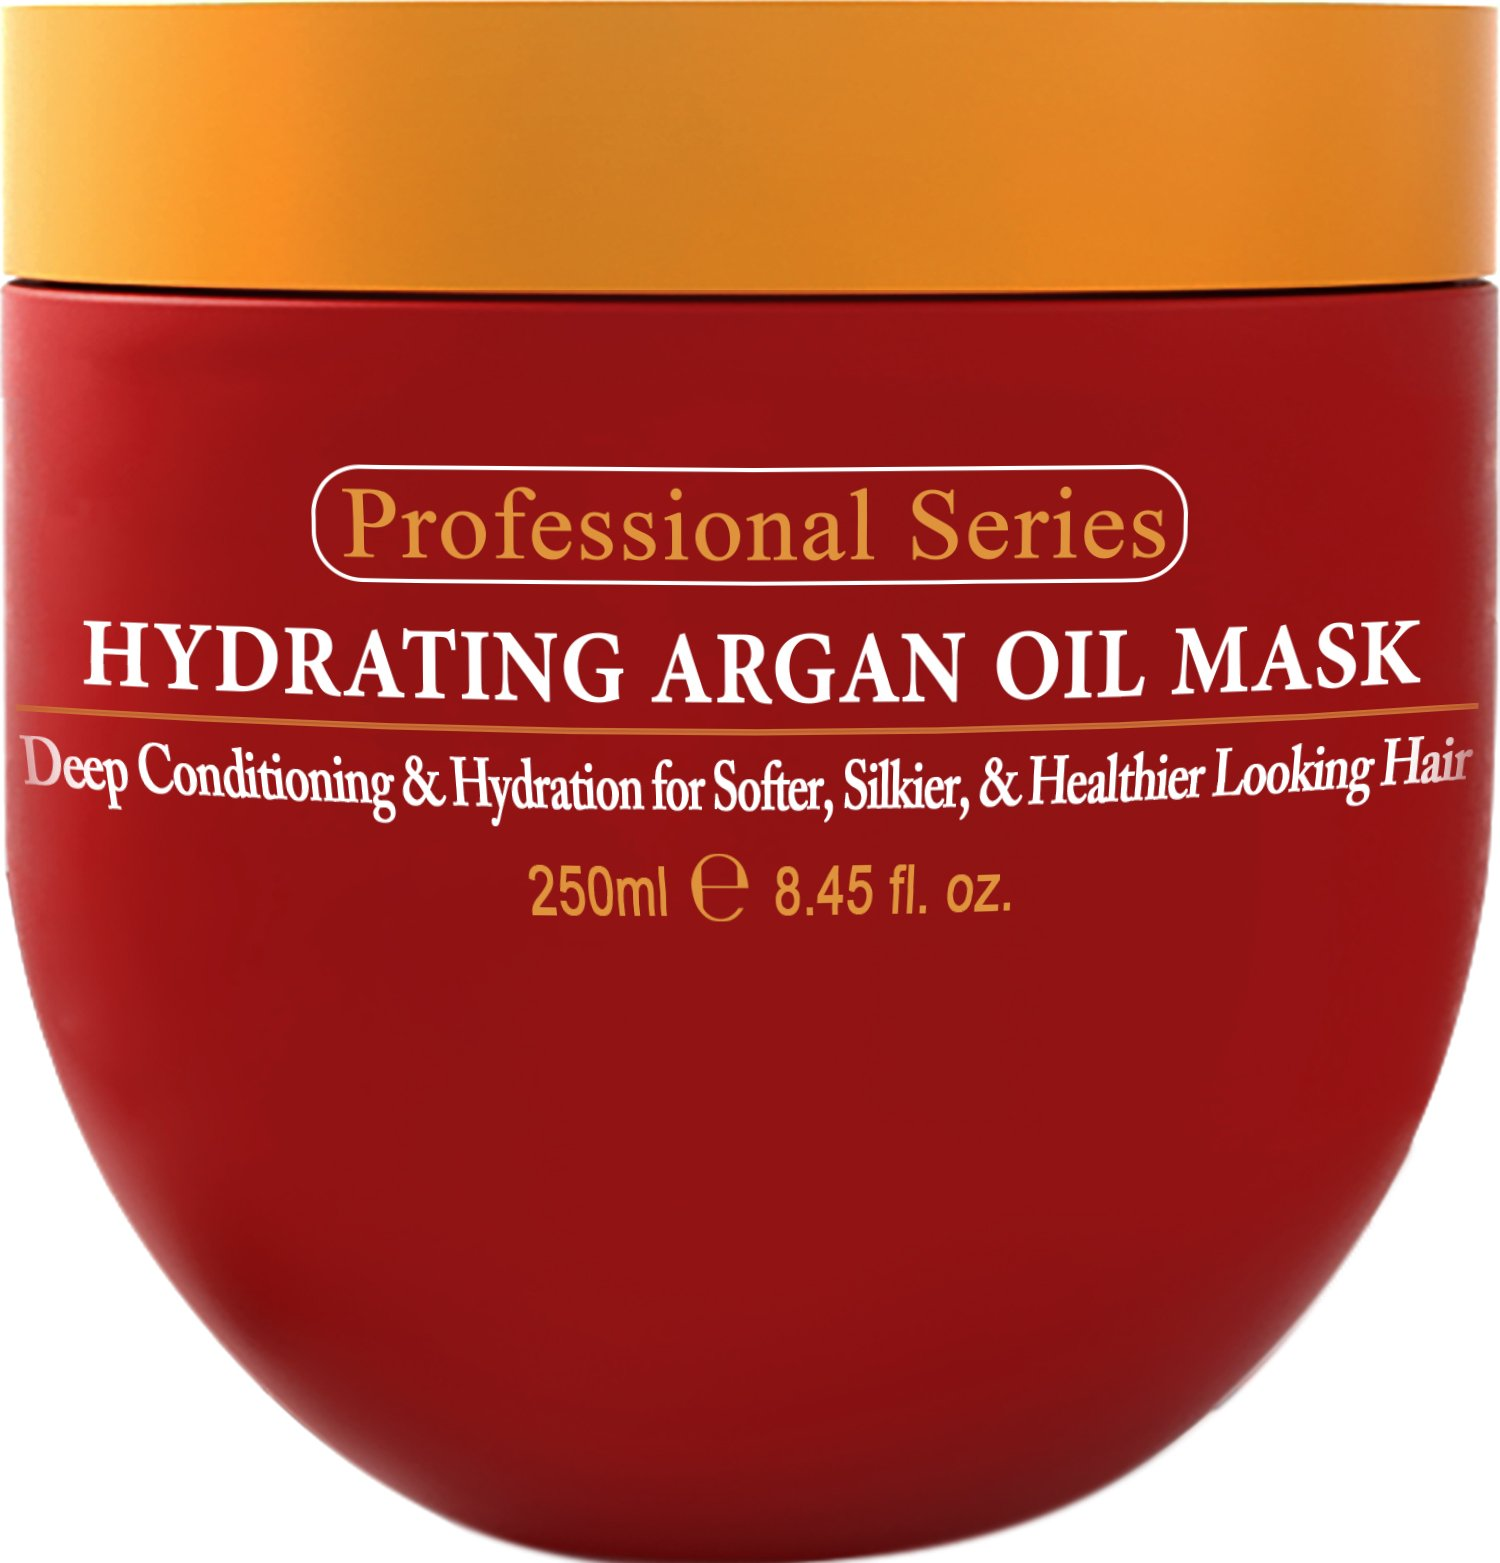 Hydrating Argan Oil Hair Mask and Deep Conditioner By Arvazallia for Dry or Damaged Hair - 8.45 Oz by Arvazallia